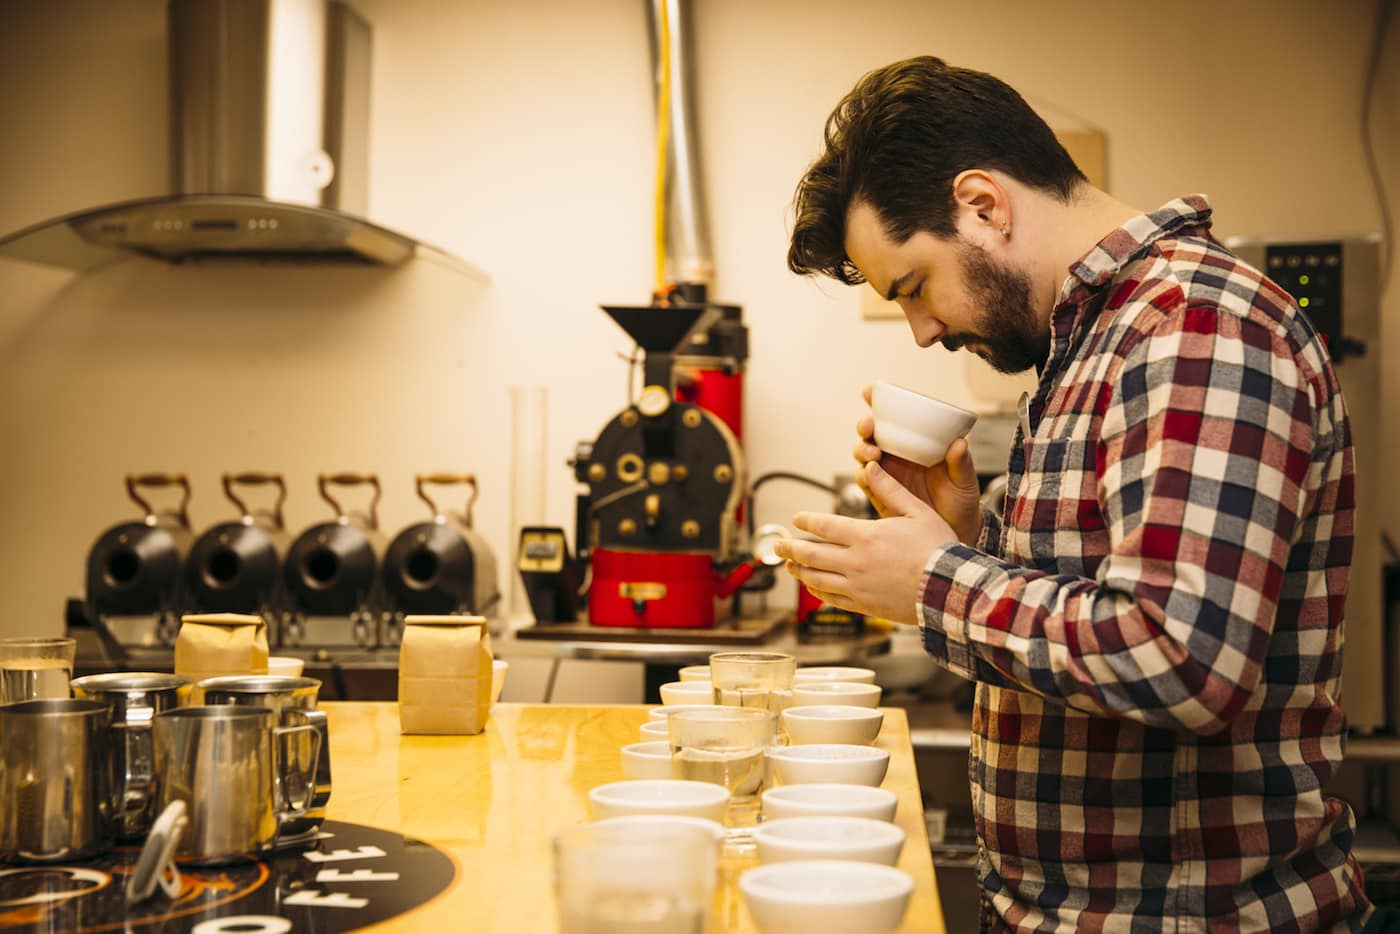 Bud cupping coffee in the previous Kaldi's Coffee Roastery